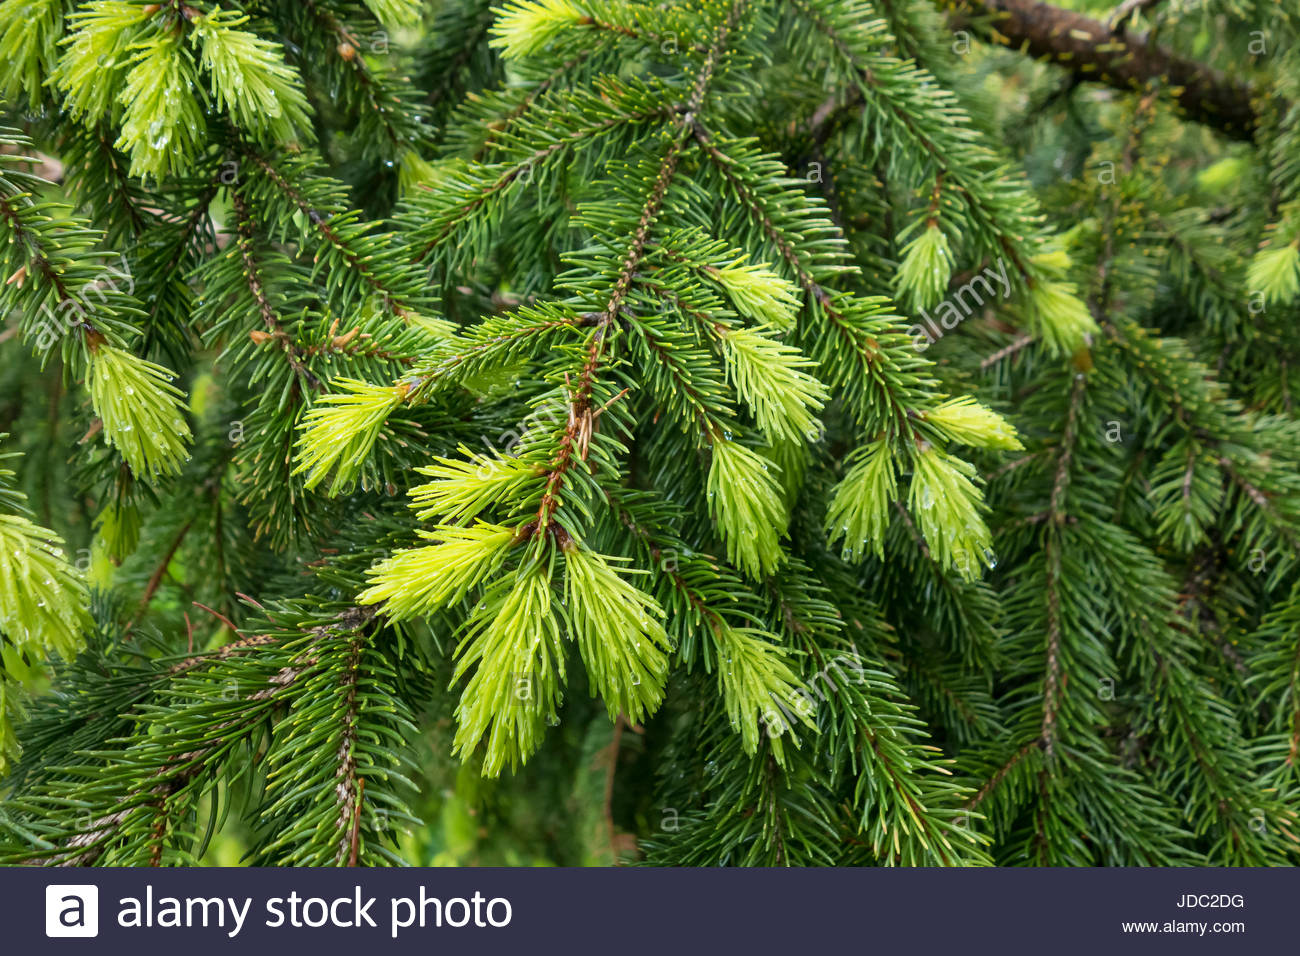 Evergreen fir tree showing this years new growth in light green and older growth retained leaves in dark green. - Stock Image